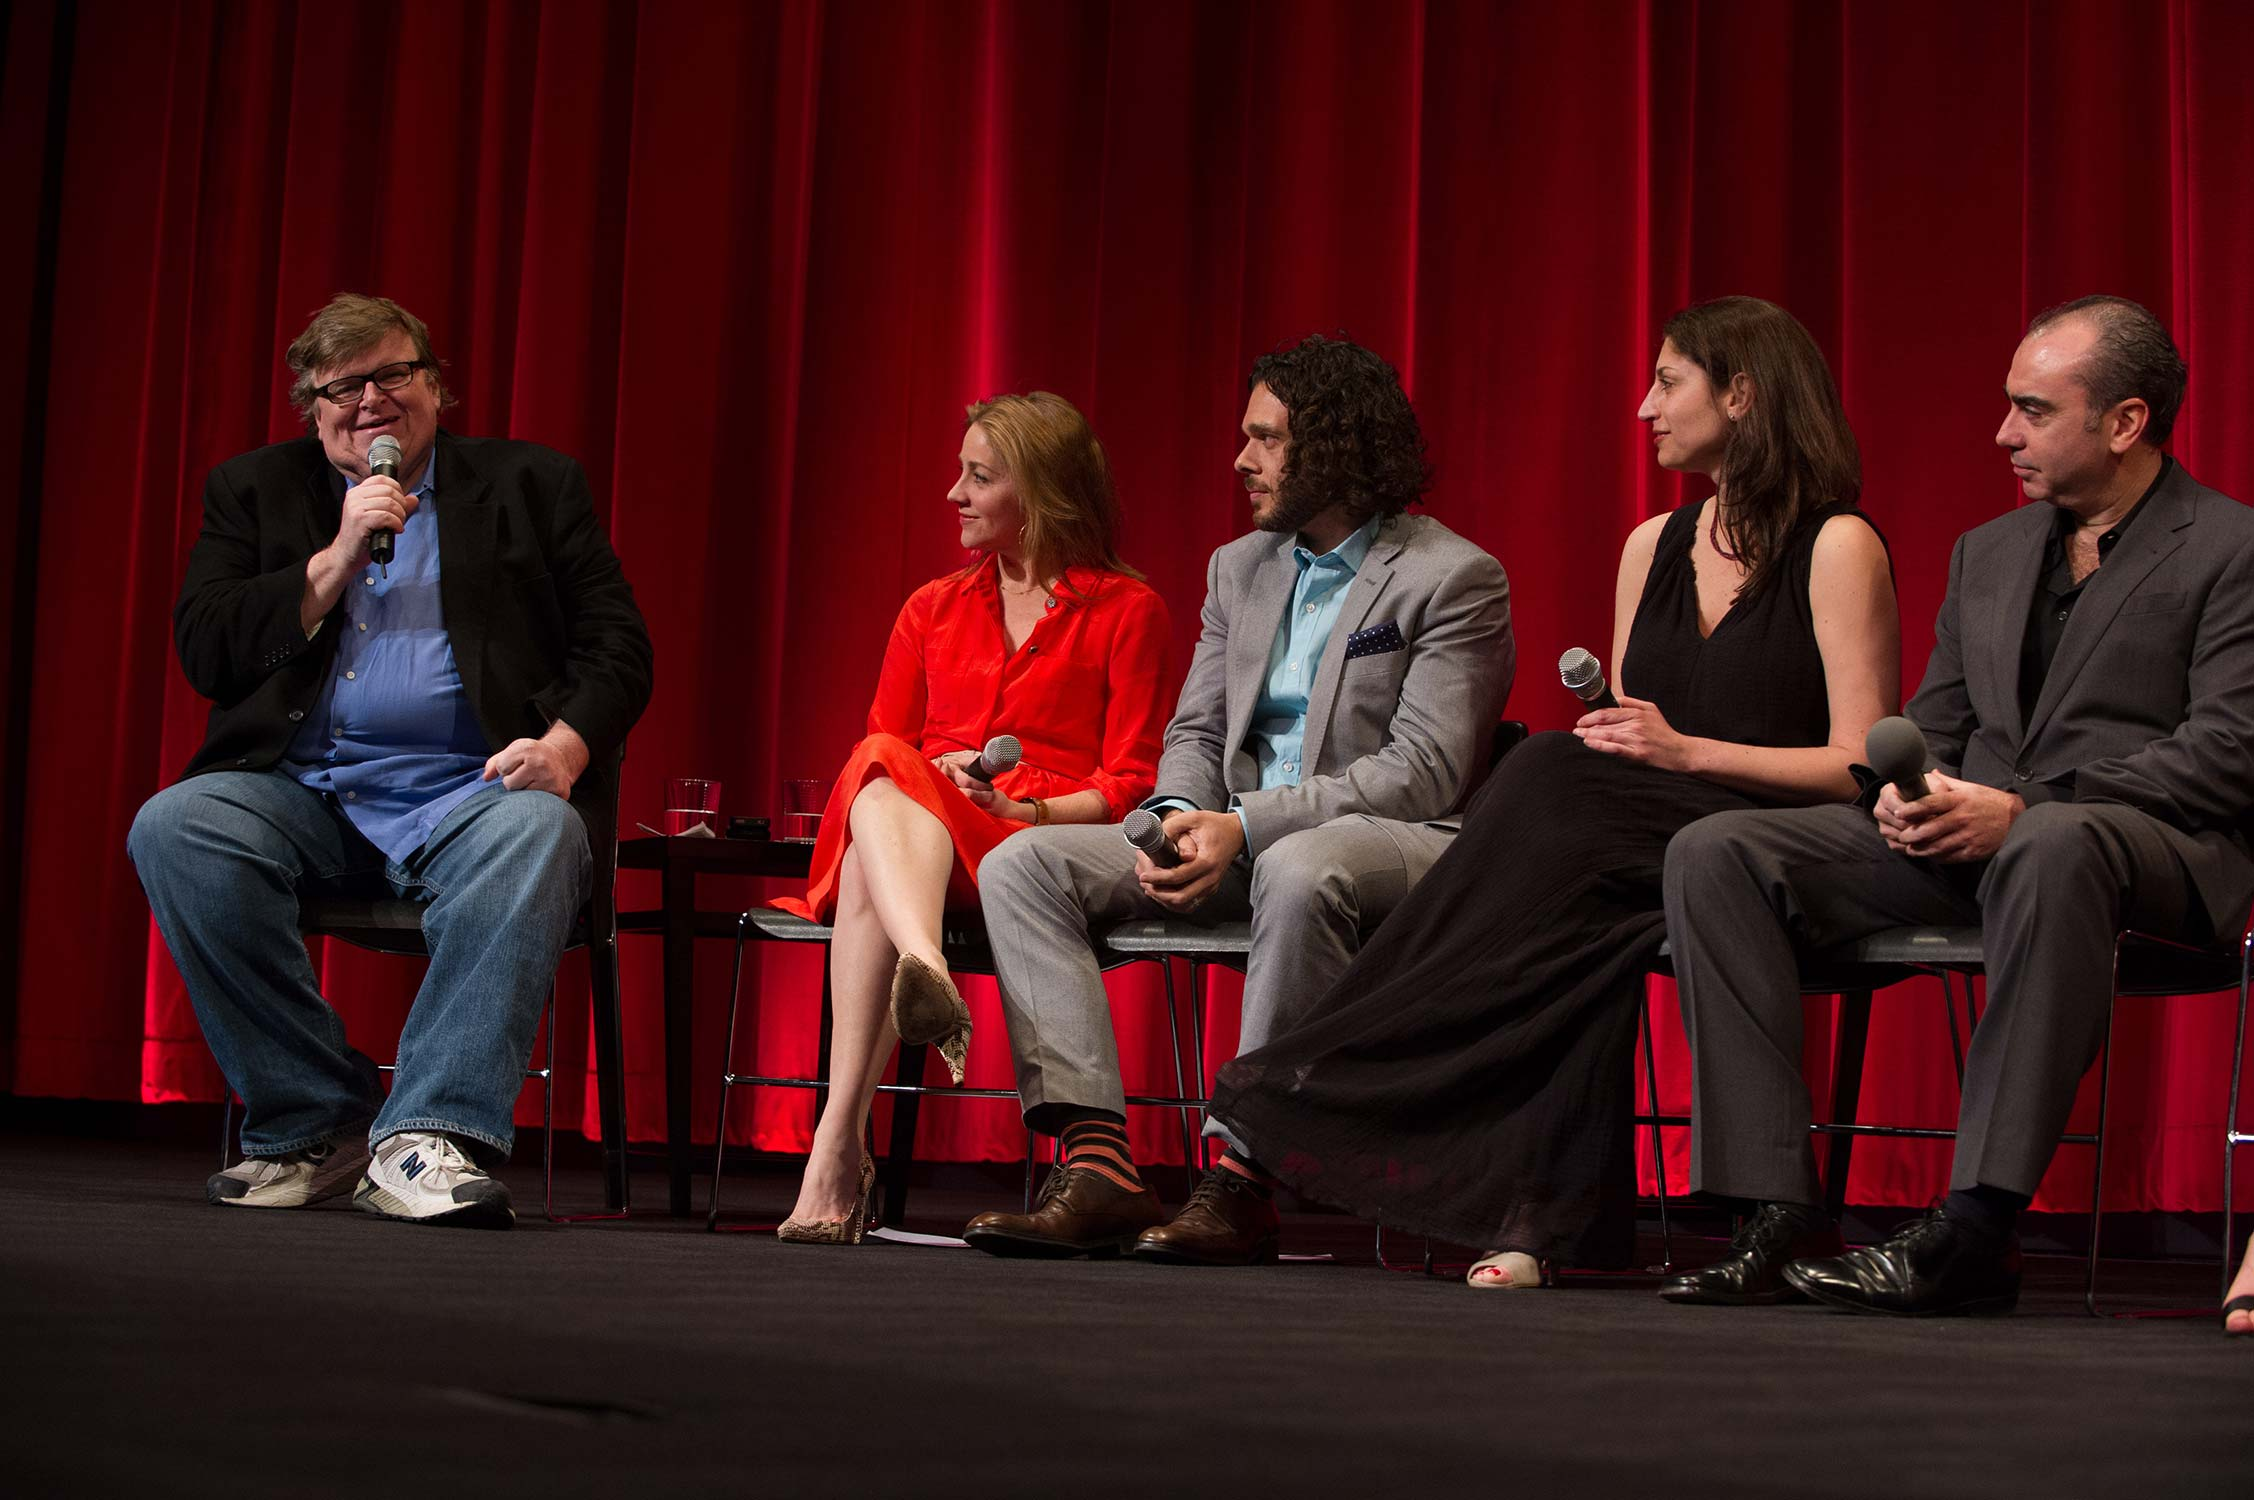 The filmmakers on stage.